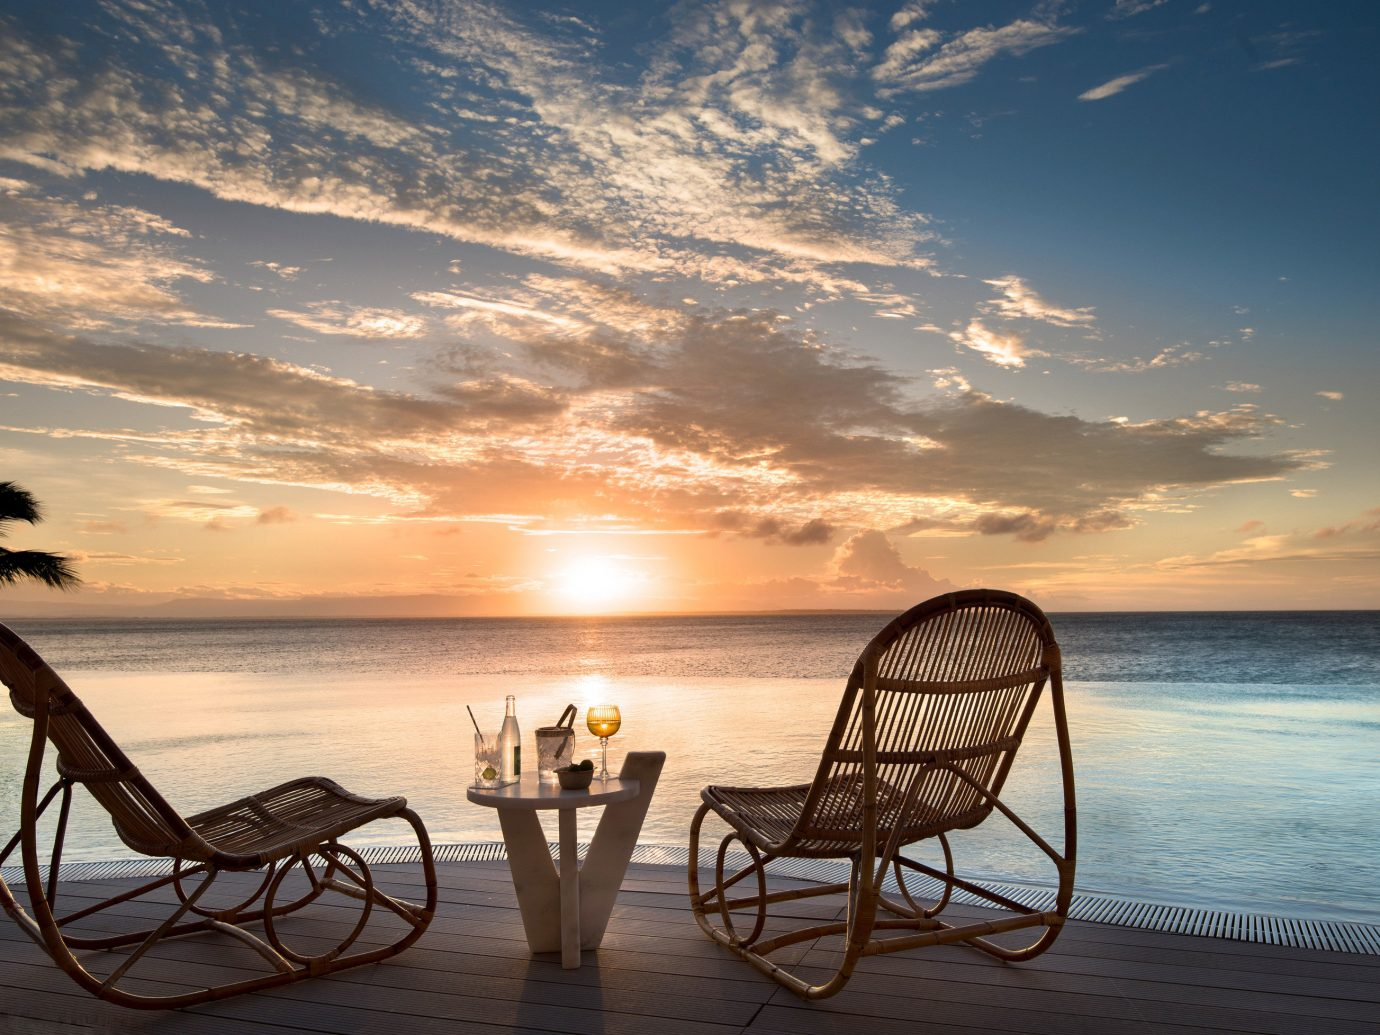 Trip Ideas water sky outdoor chair Beach Sea Sunset body of water horizon sunrise Ocean shore cloud vacation morning caribbean evening tropics calm dawn dusk Sun set overlooking sandy